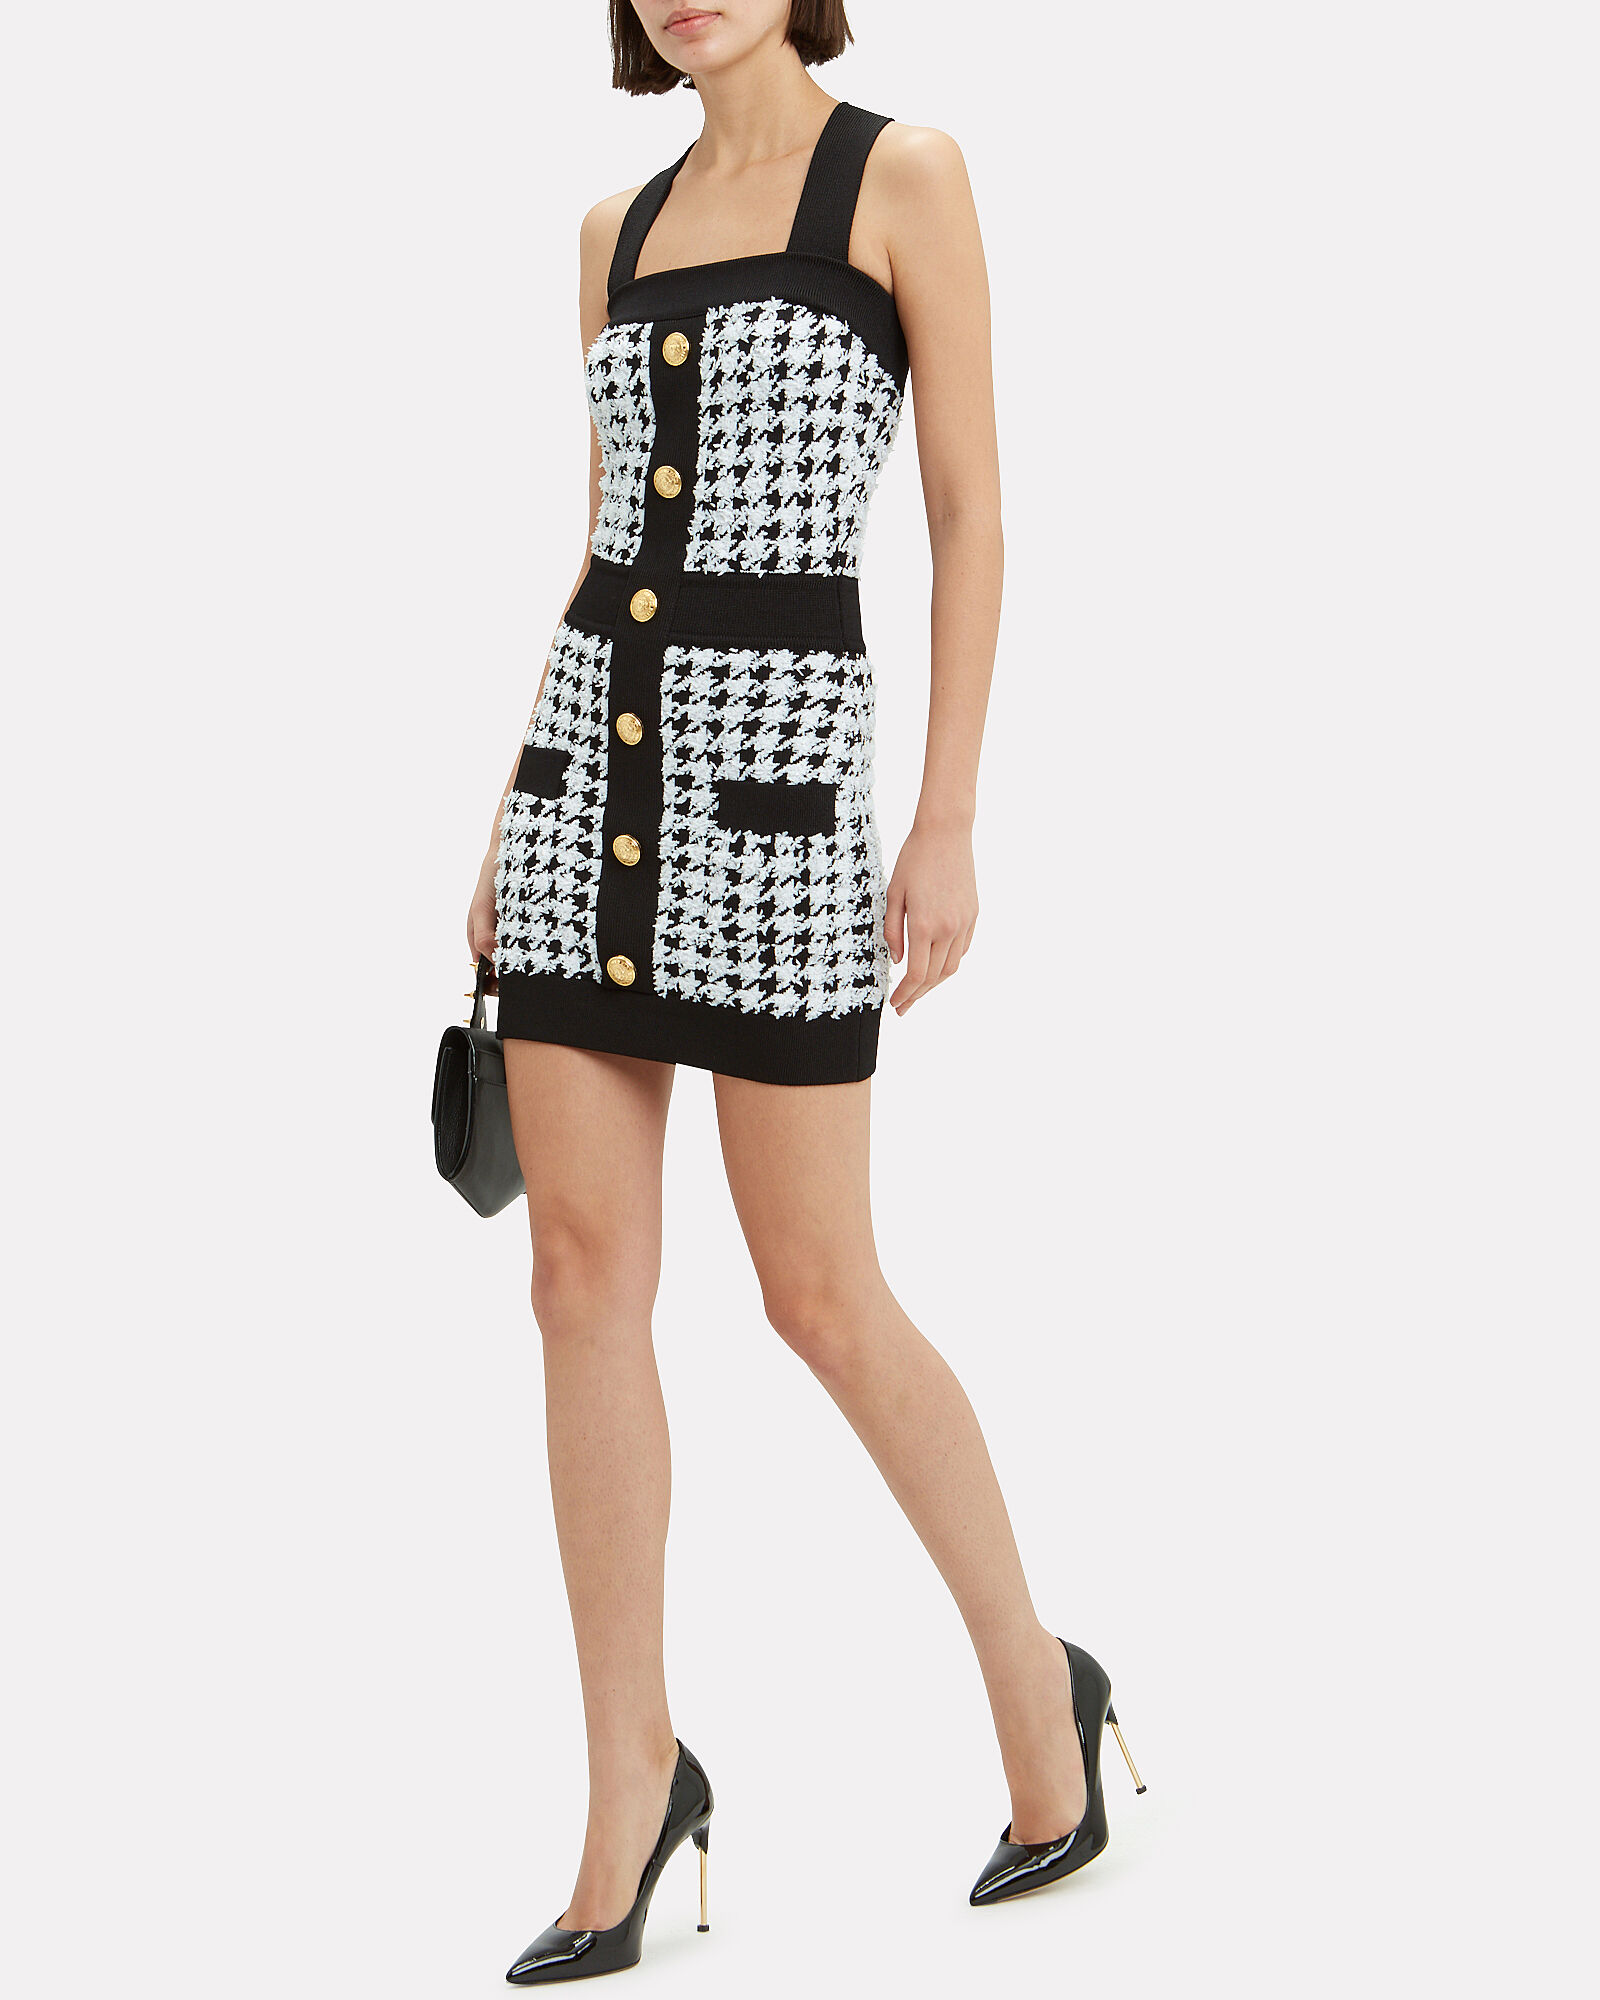 Houndstooth Mini Dress, BLK/WHT, hi-res